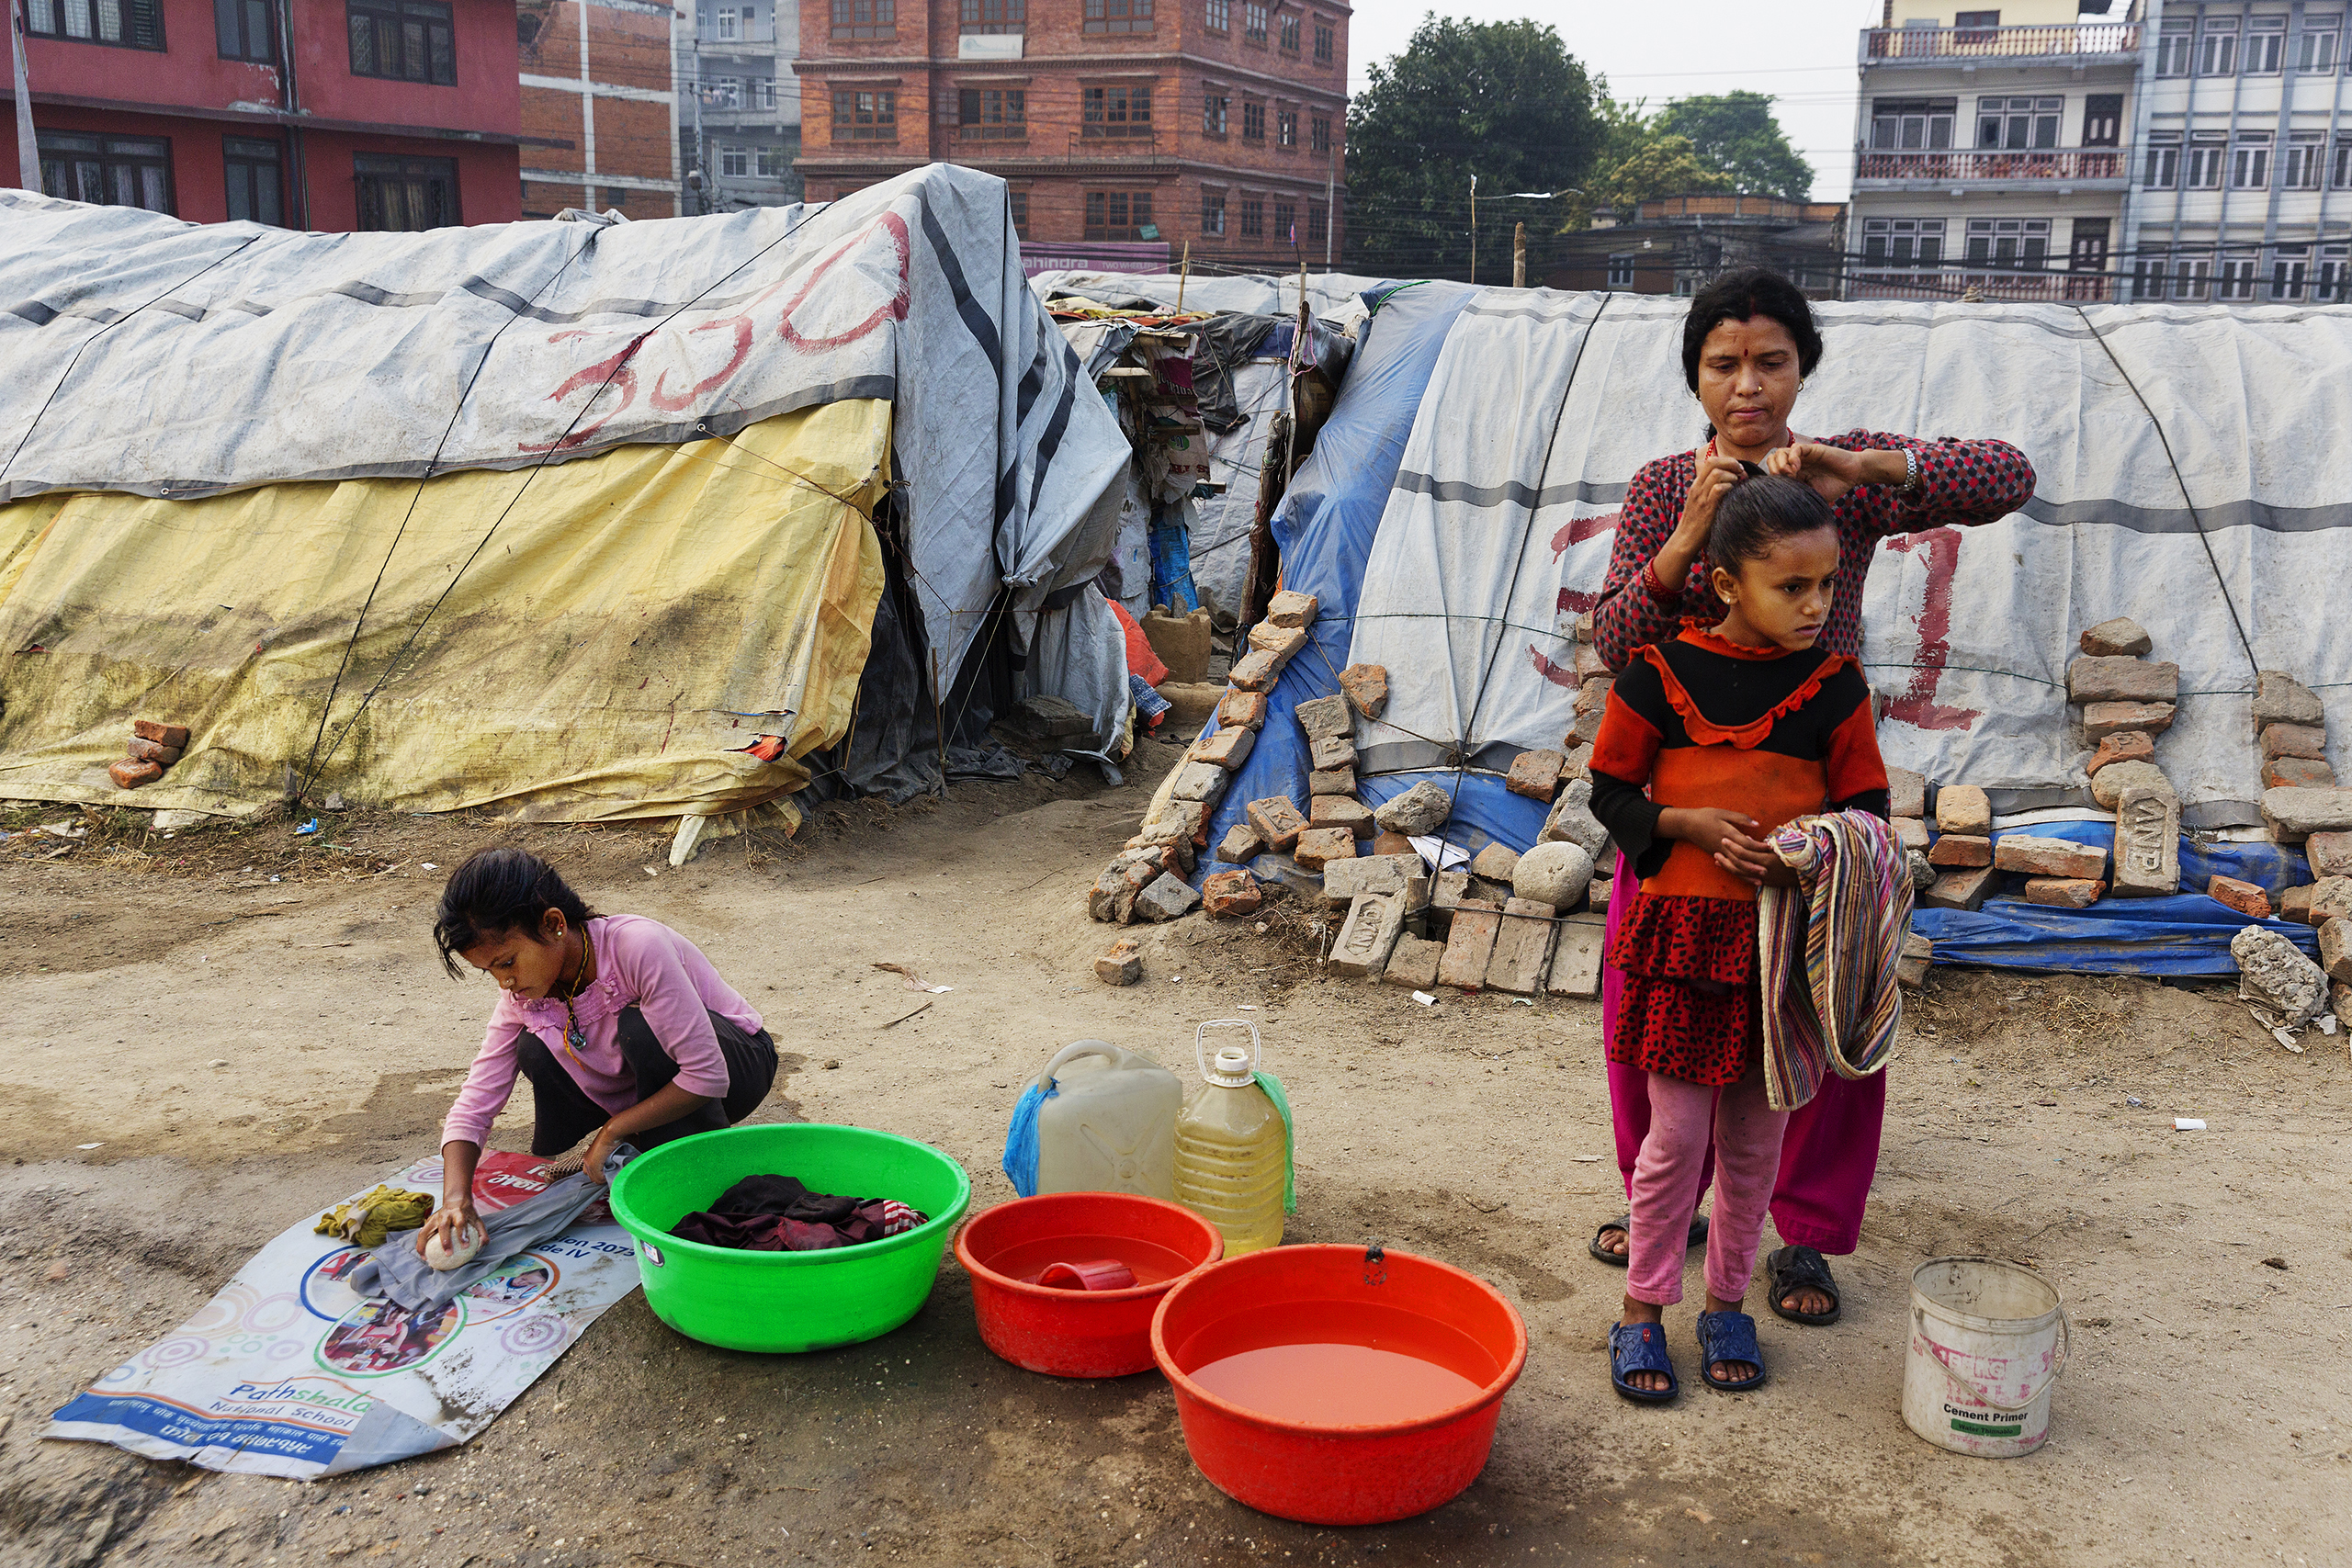 A woman and children at a squalid  tent encampment in central Kathmandu, Nepal, nearly a year after the devastating 2015 earthquakes, March 31, 2016.